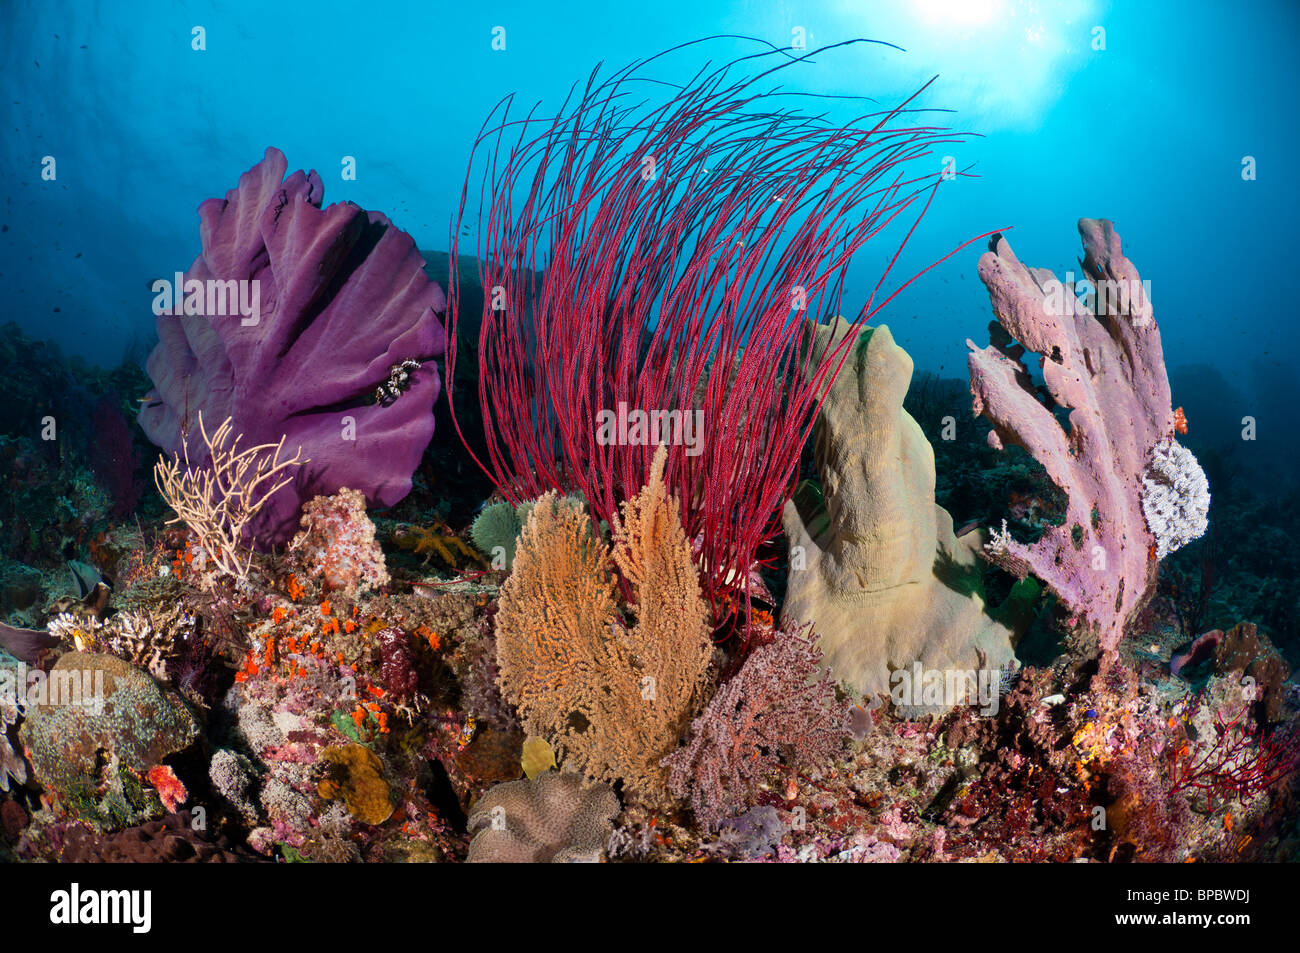 A colorful community of elephant ear sponges, sea whips and sea fans, Misool, West Papua, Indonesia. - Stock Image